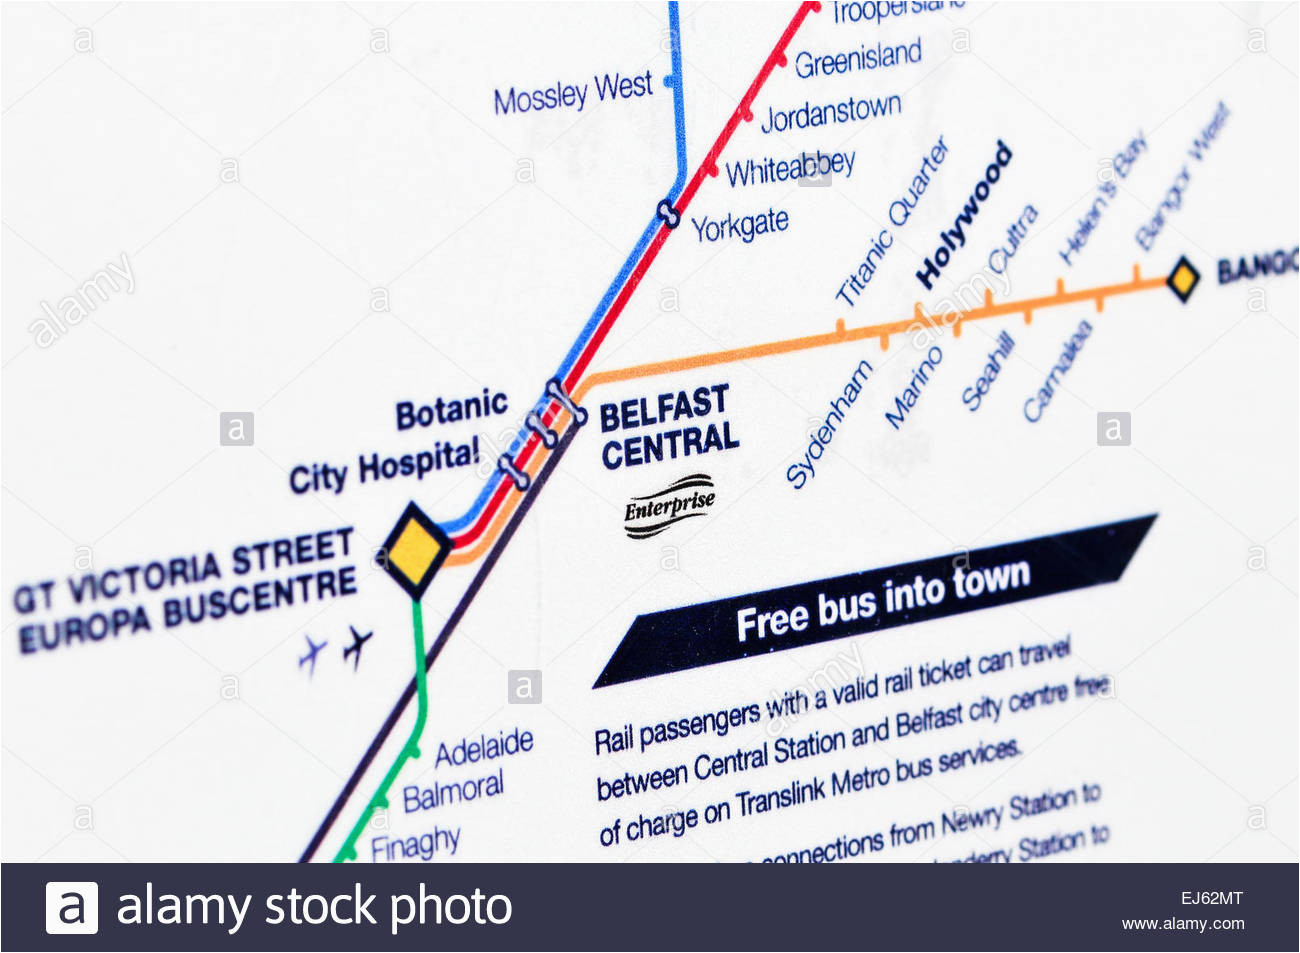 train map stock photos train map stock images alamy